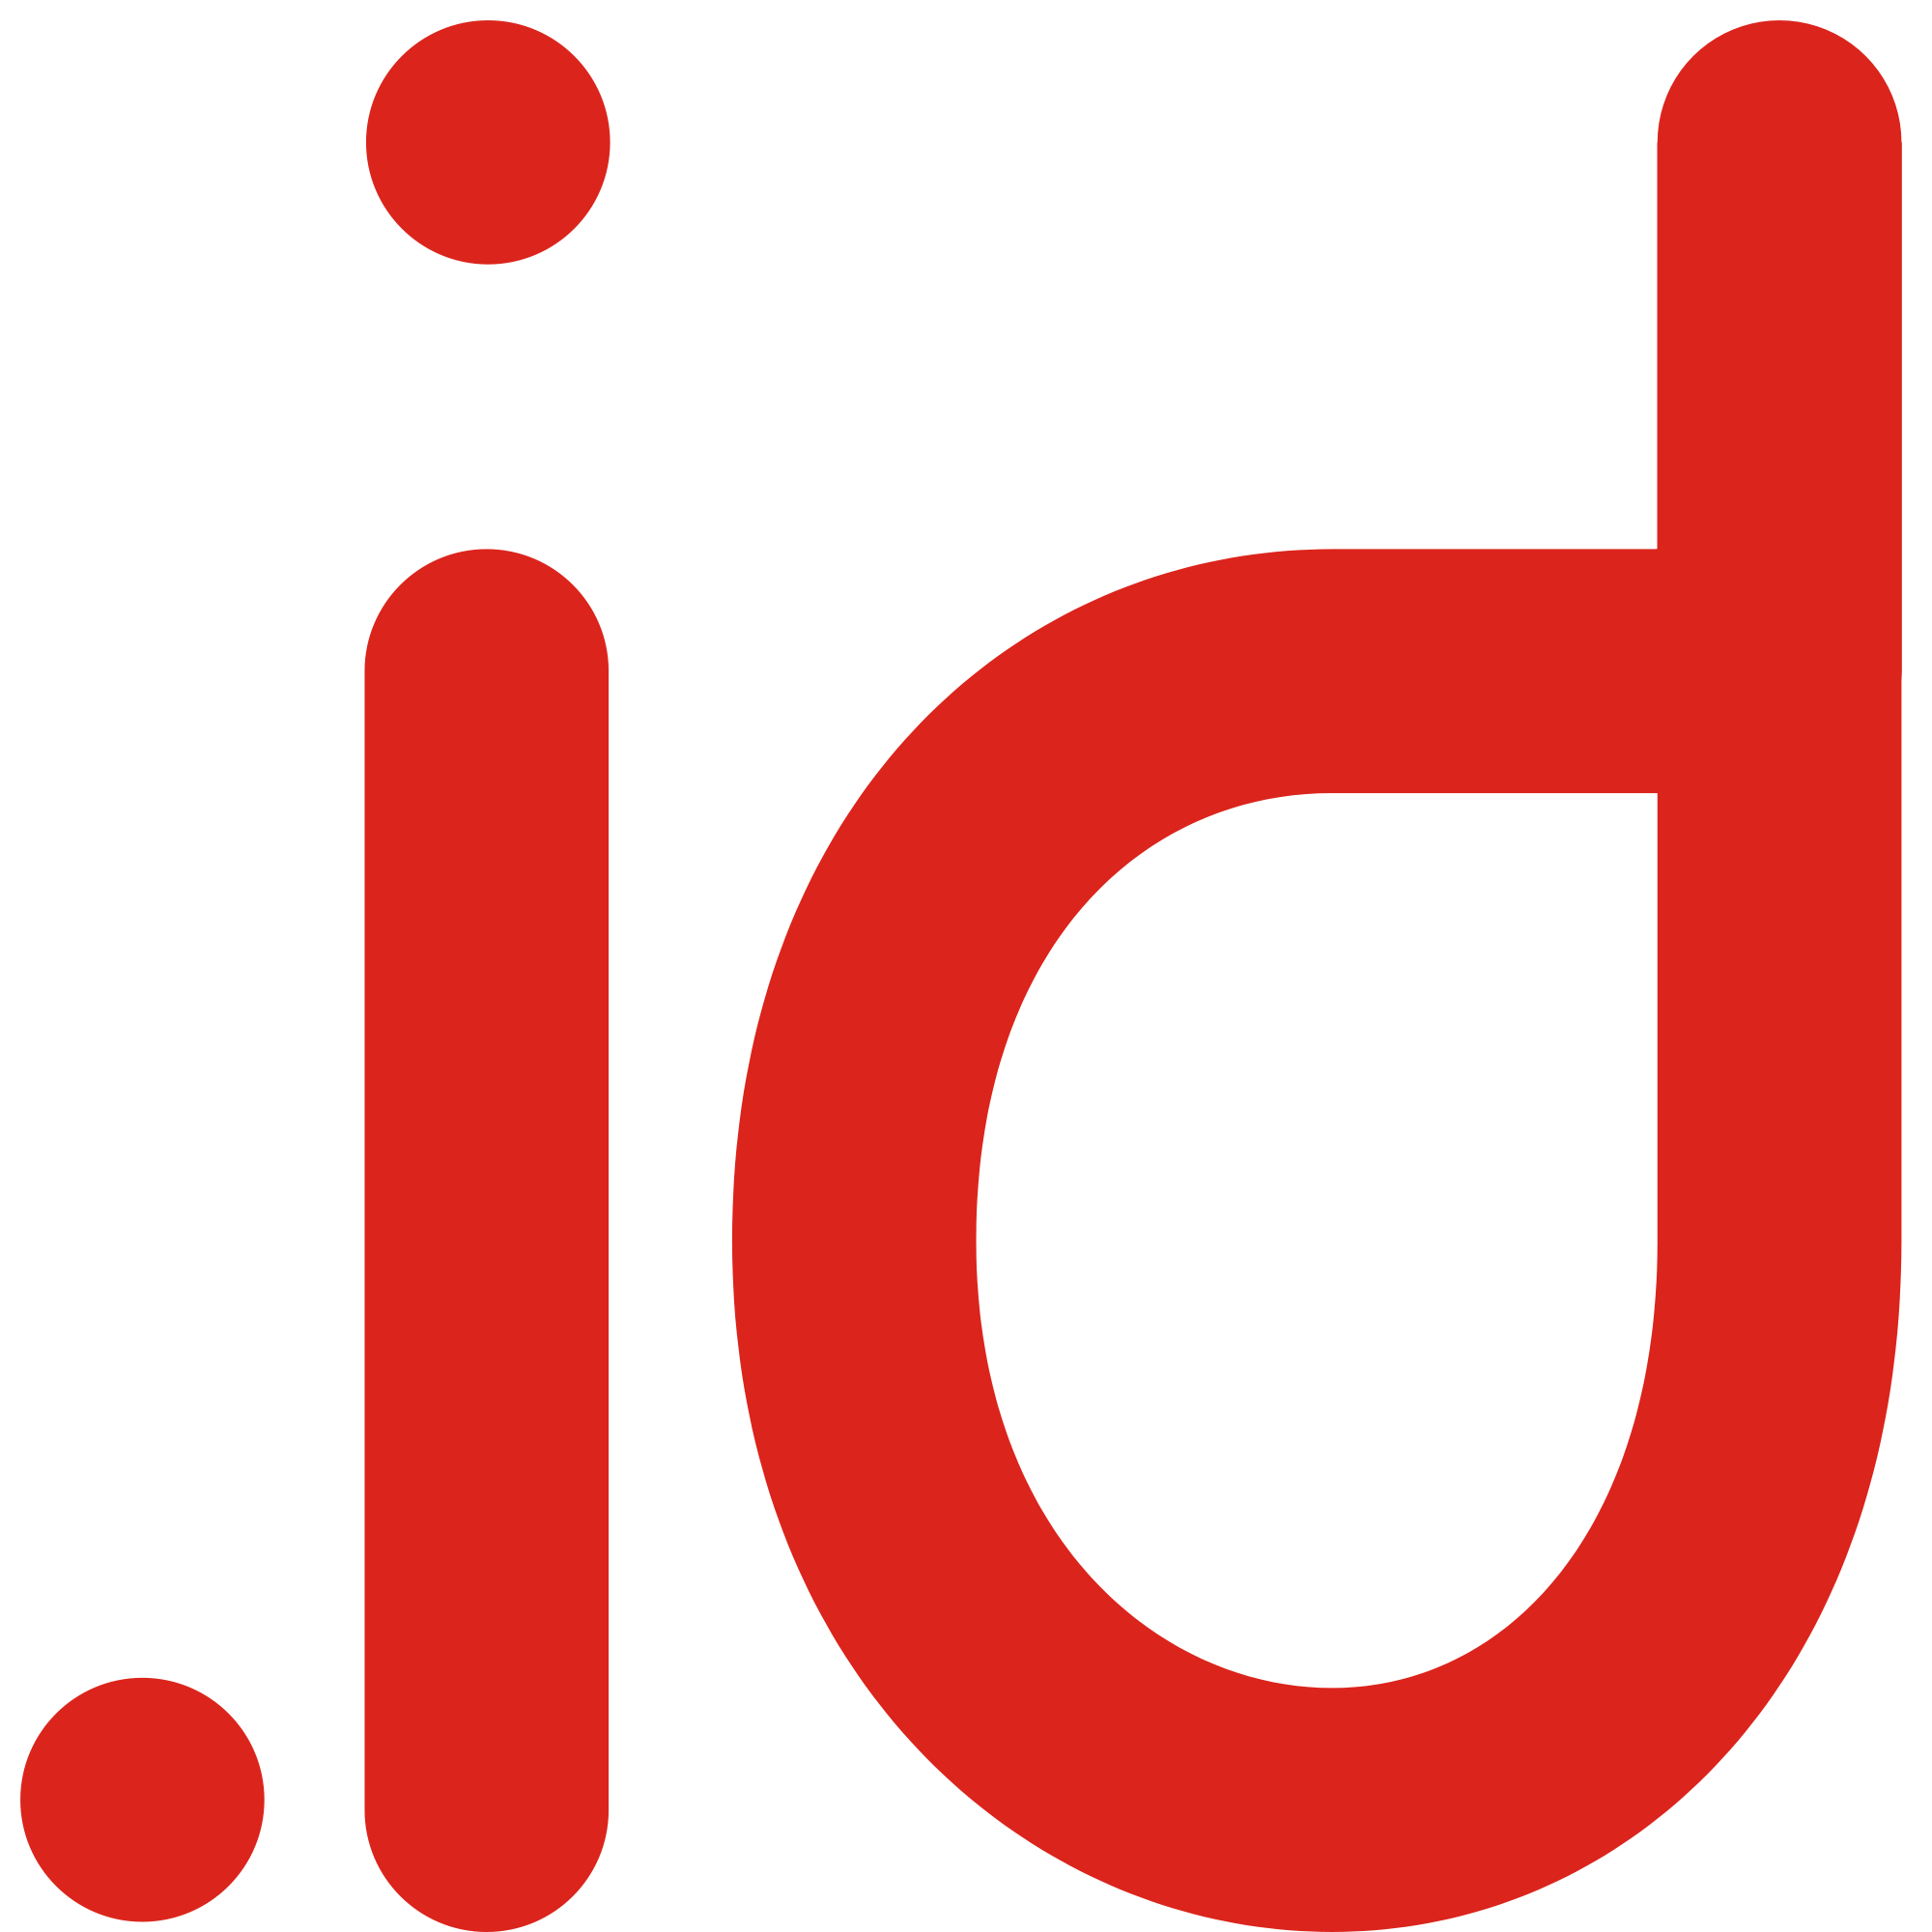 Svg id png. File wikimedia commons open